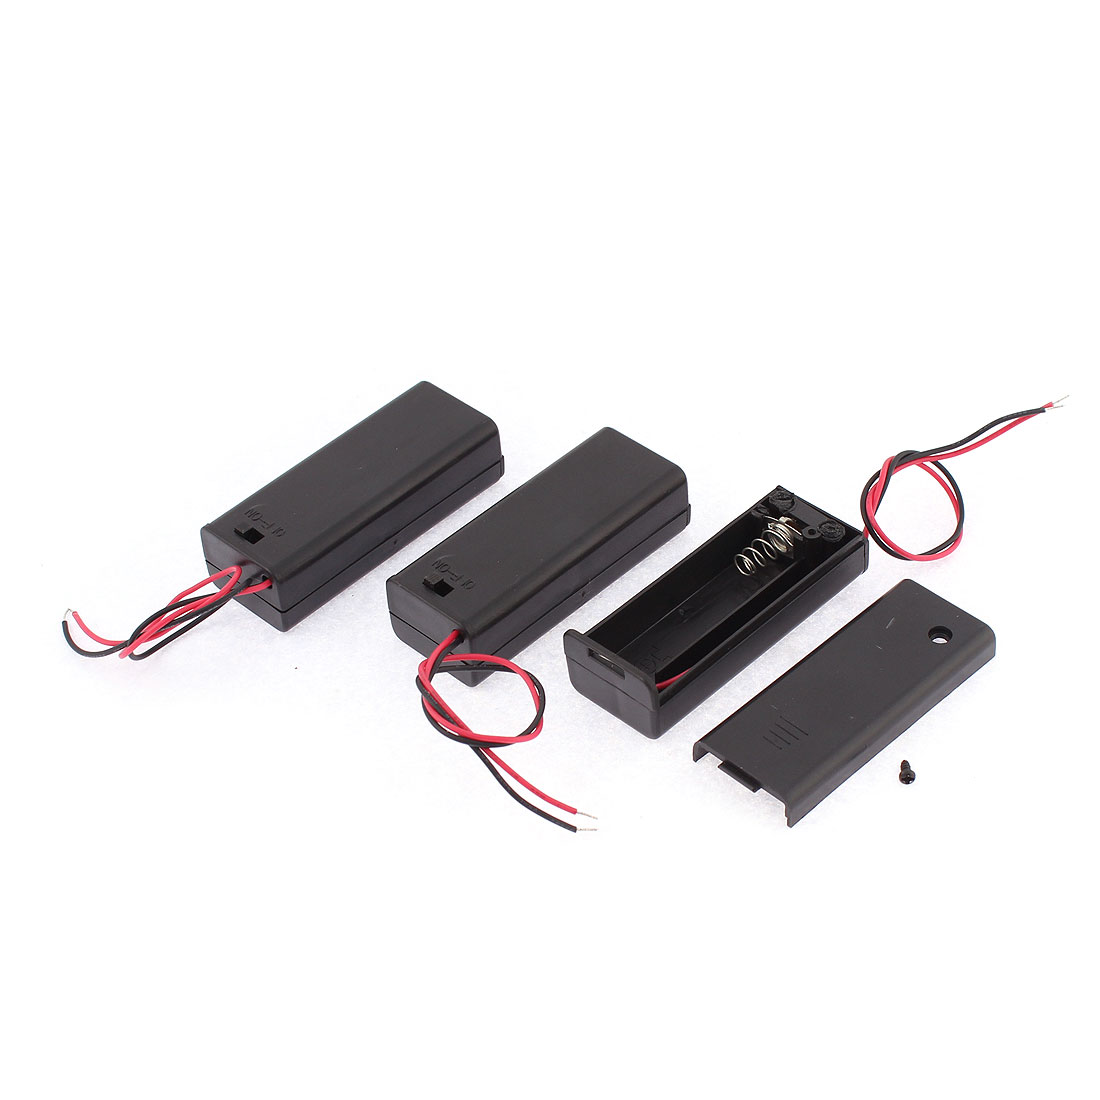 3 Pcs Plastic 2 Wires 1 x 1.5V AA Battery Clip Holder Box Case w Lid